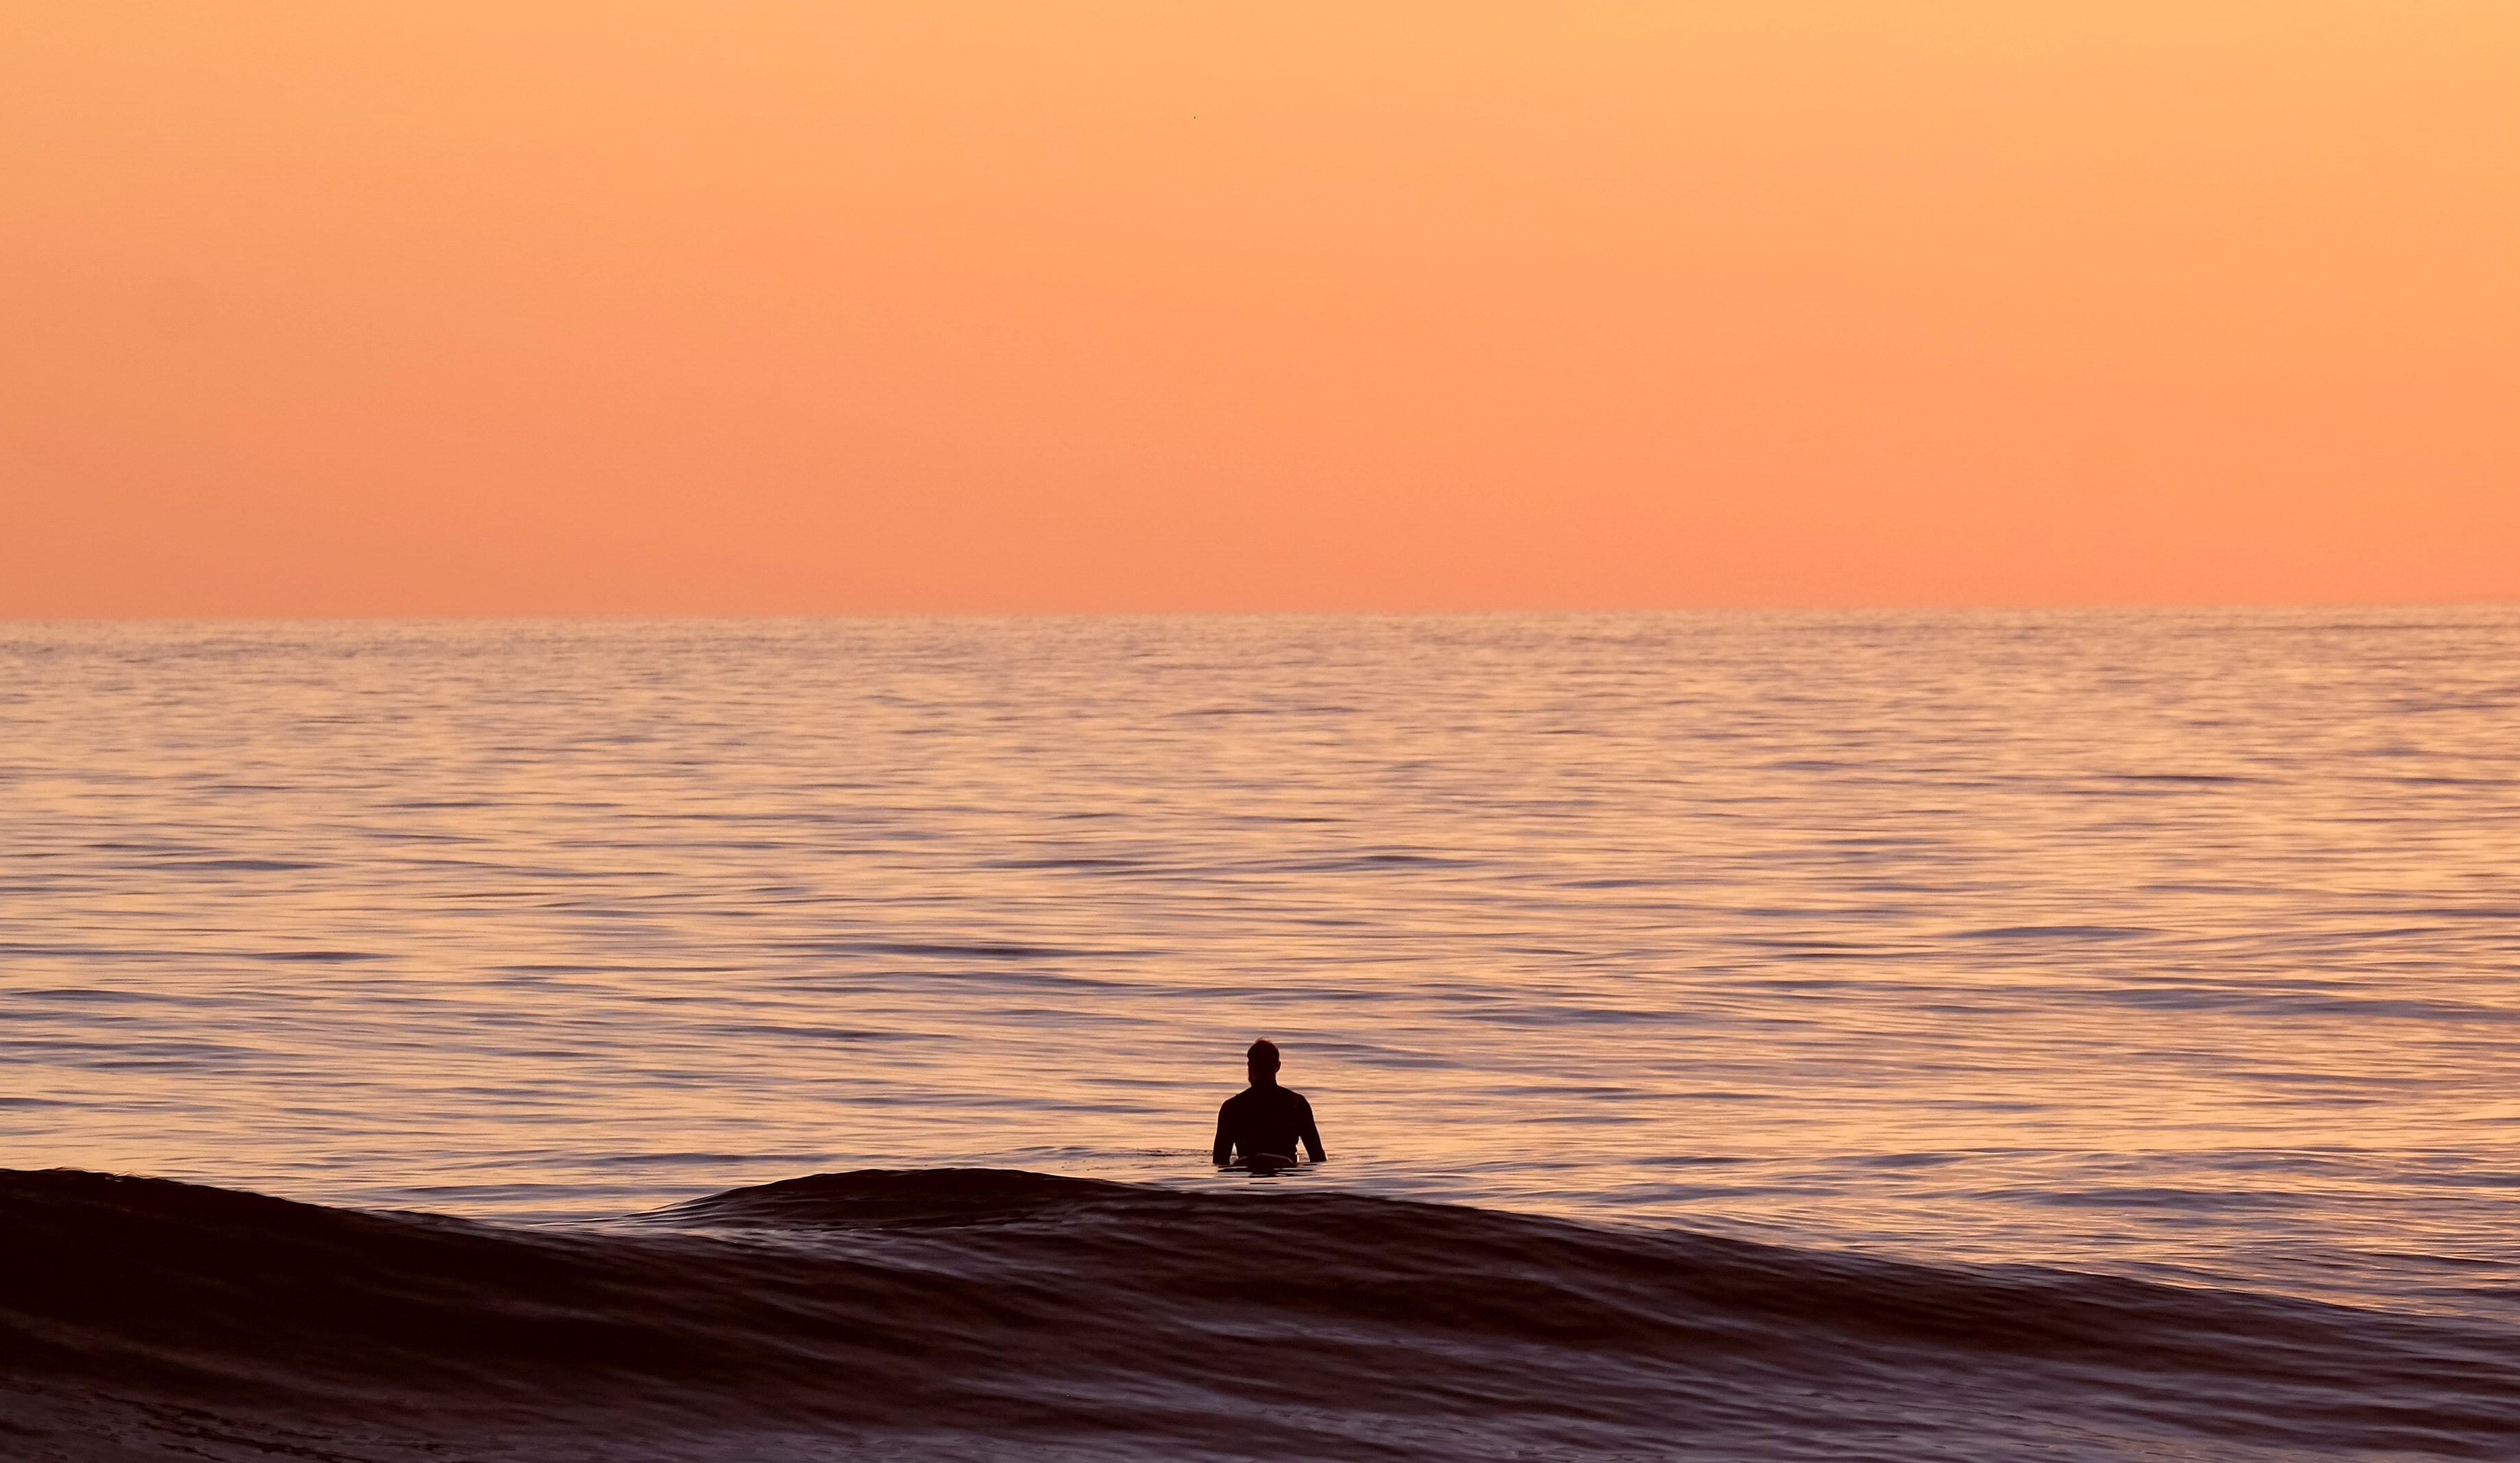 Silhouette of a man waist-deep in the ocean under an orange sky